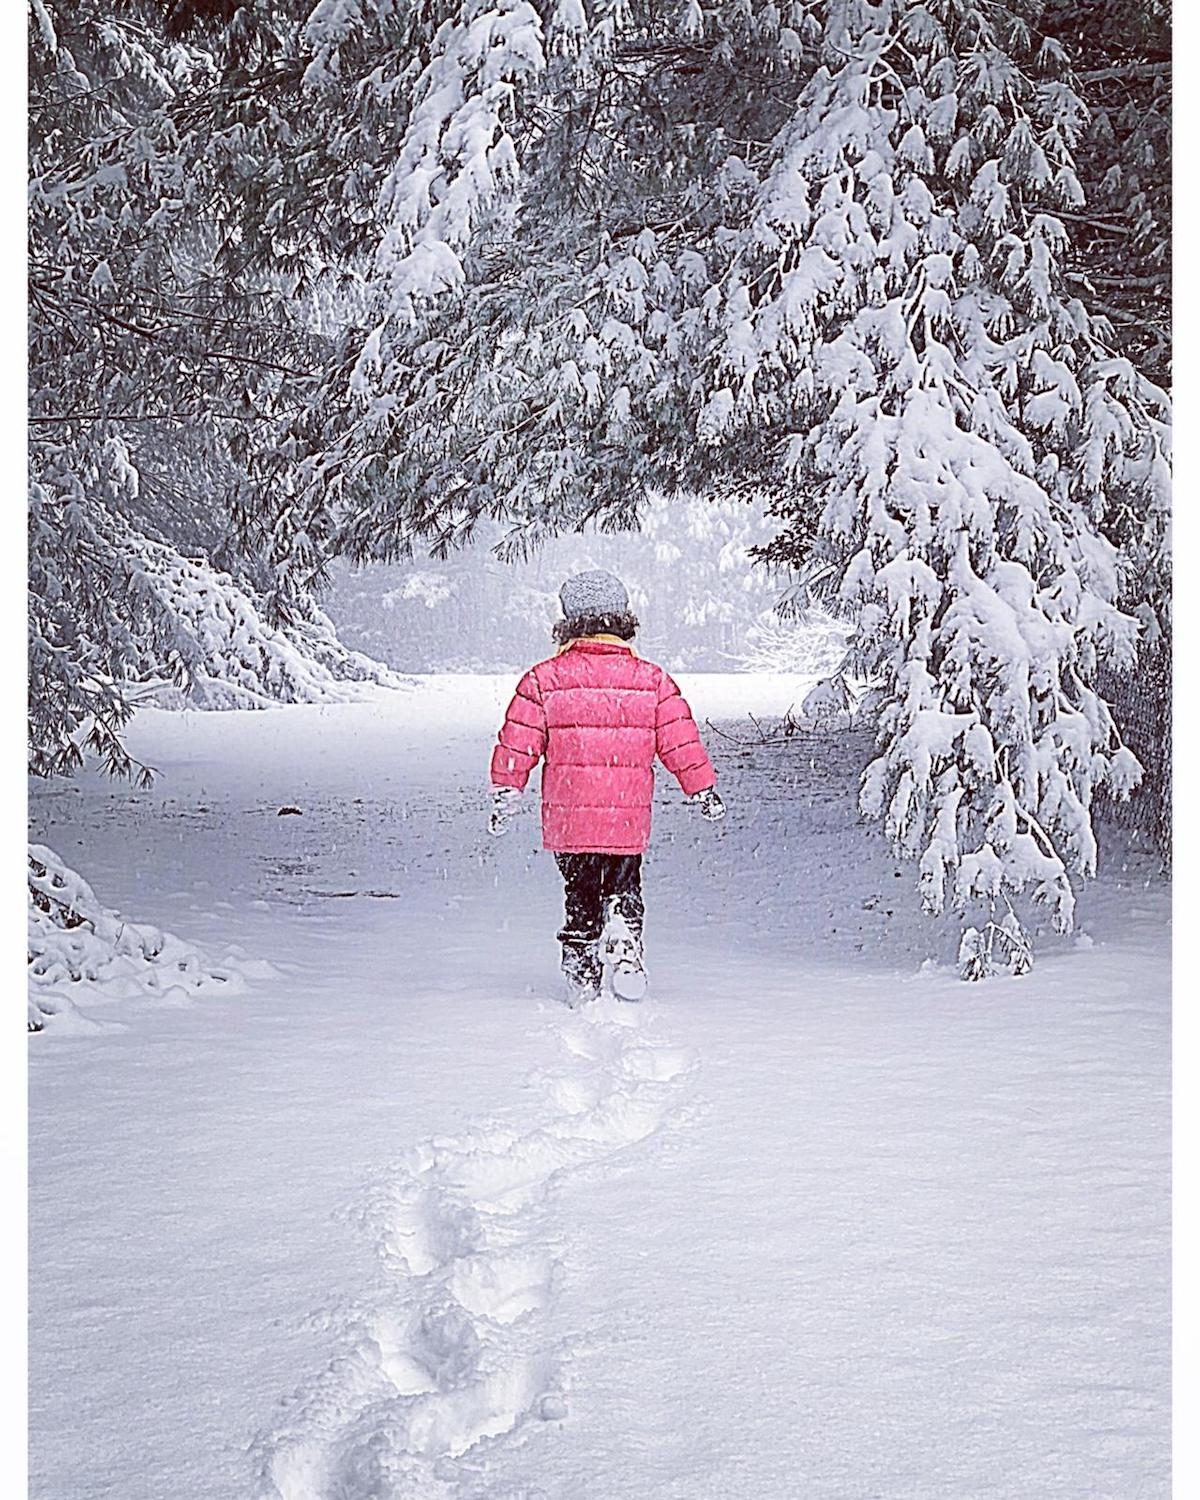 A little girl in a pink jacket walking between the trees in the snow.